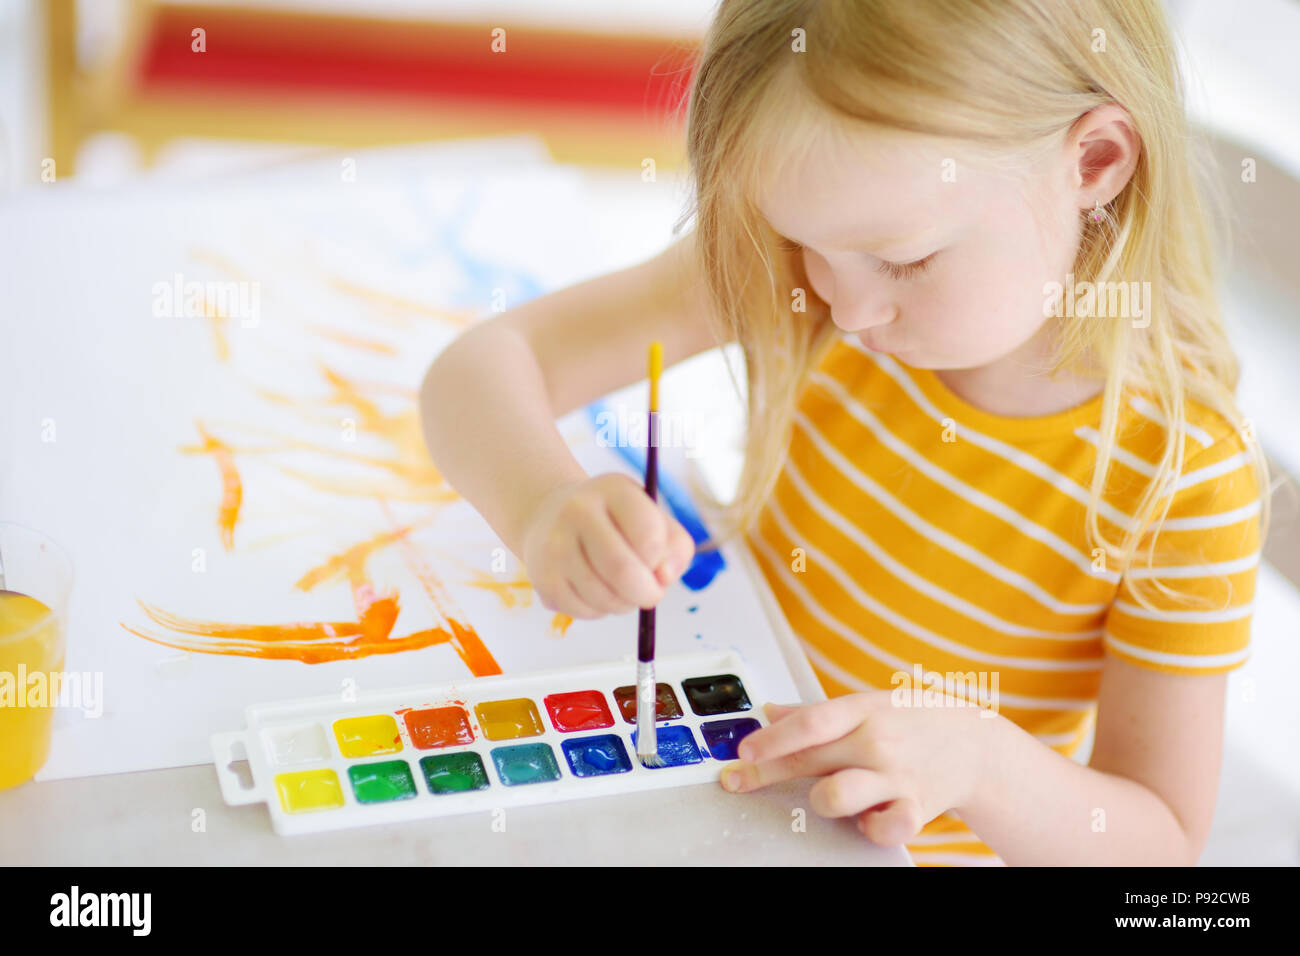 Home office colorful girl Canvas Cute Little Girl Drawing With Colorful Paints At Daycare Creative Kid Painting At School Girl Doing Homework At Home Alamy Cute Little Girl Drawing With Colorful Paints At Daycare Creative